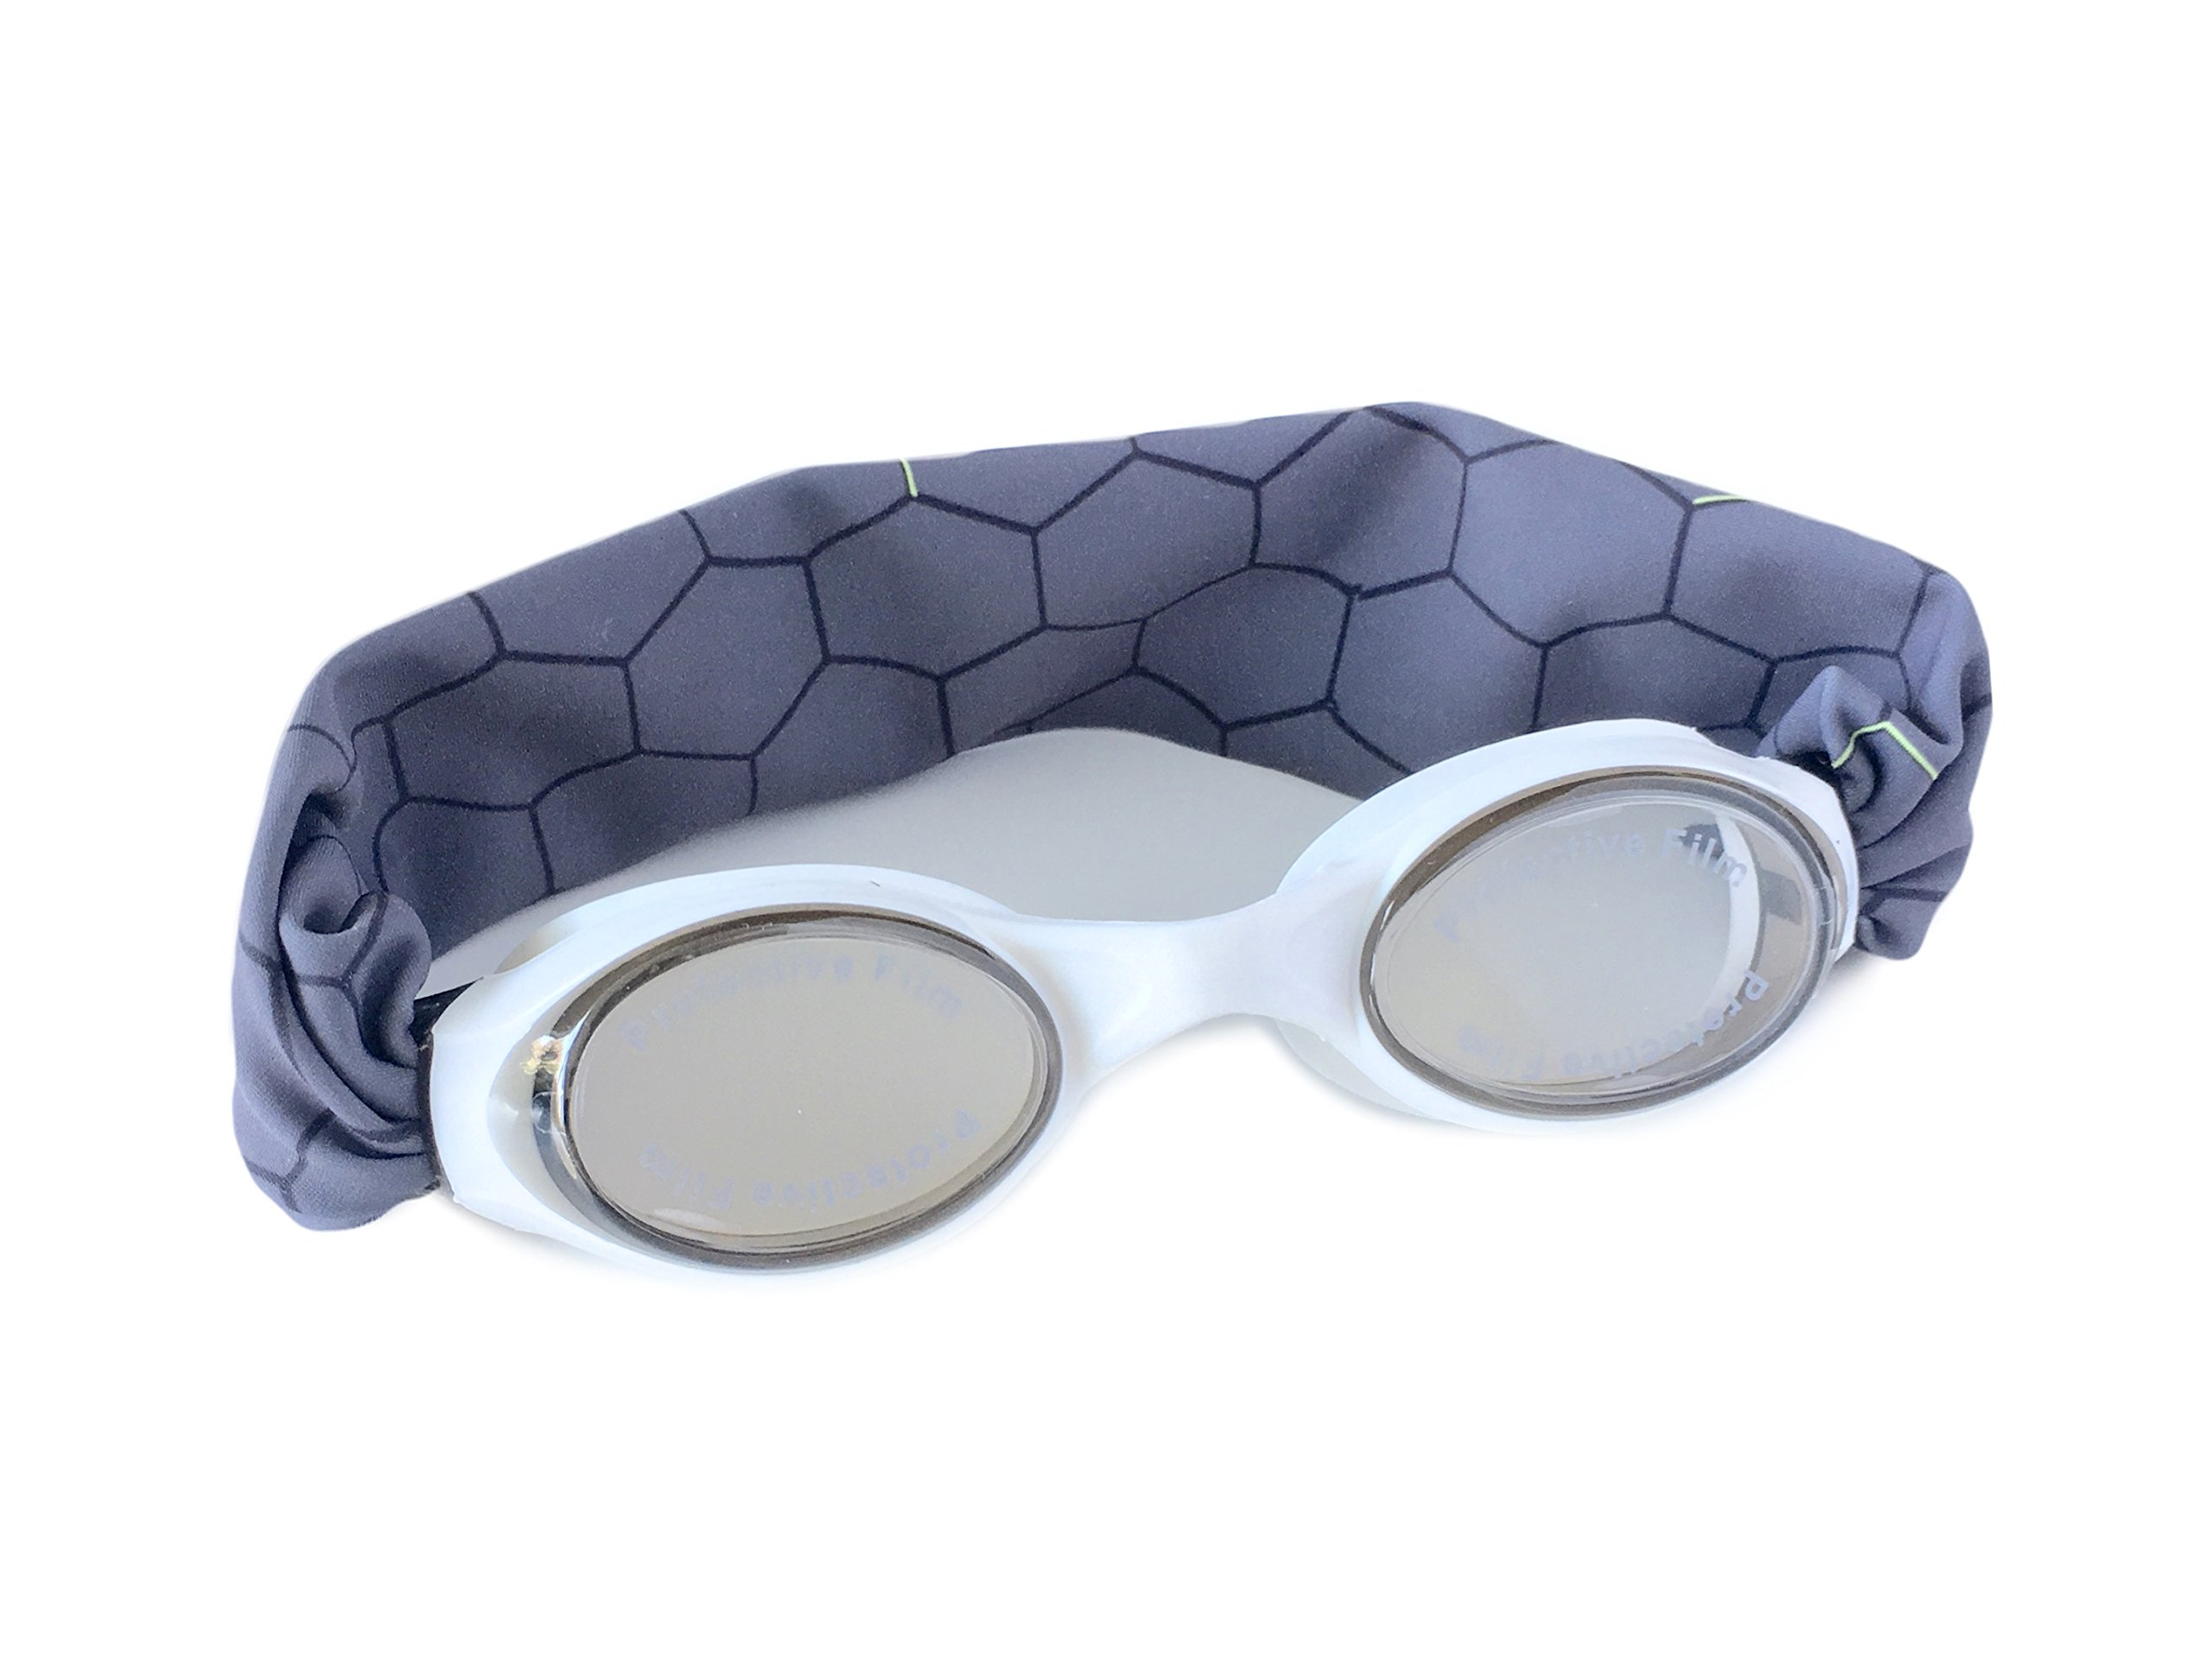 SPLASH''STEEL MATRIX'' Swim Goggles - Comfortable, Fashionable, Fun - Fits Kids & Adults - Won't Pull Your Hair - Easy to Use - High Visibility Anti-Fog Lenses - PATENT PENDING